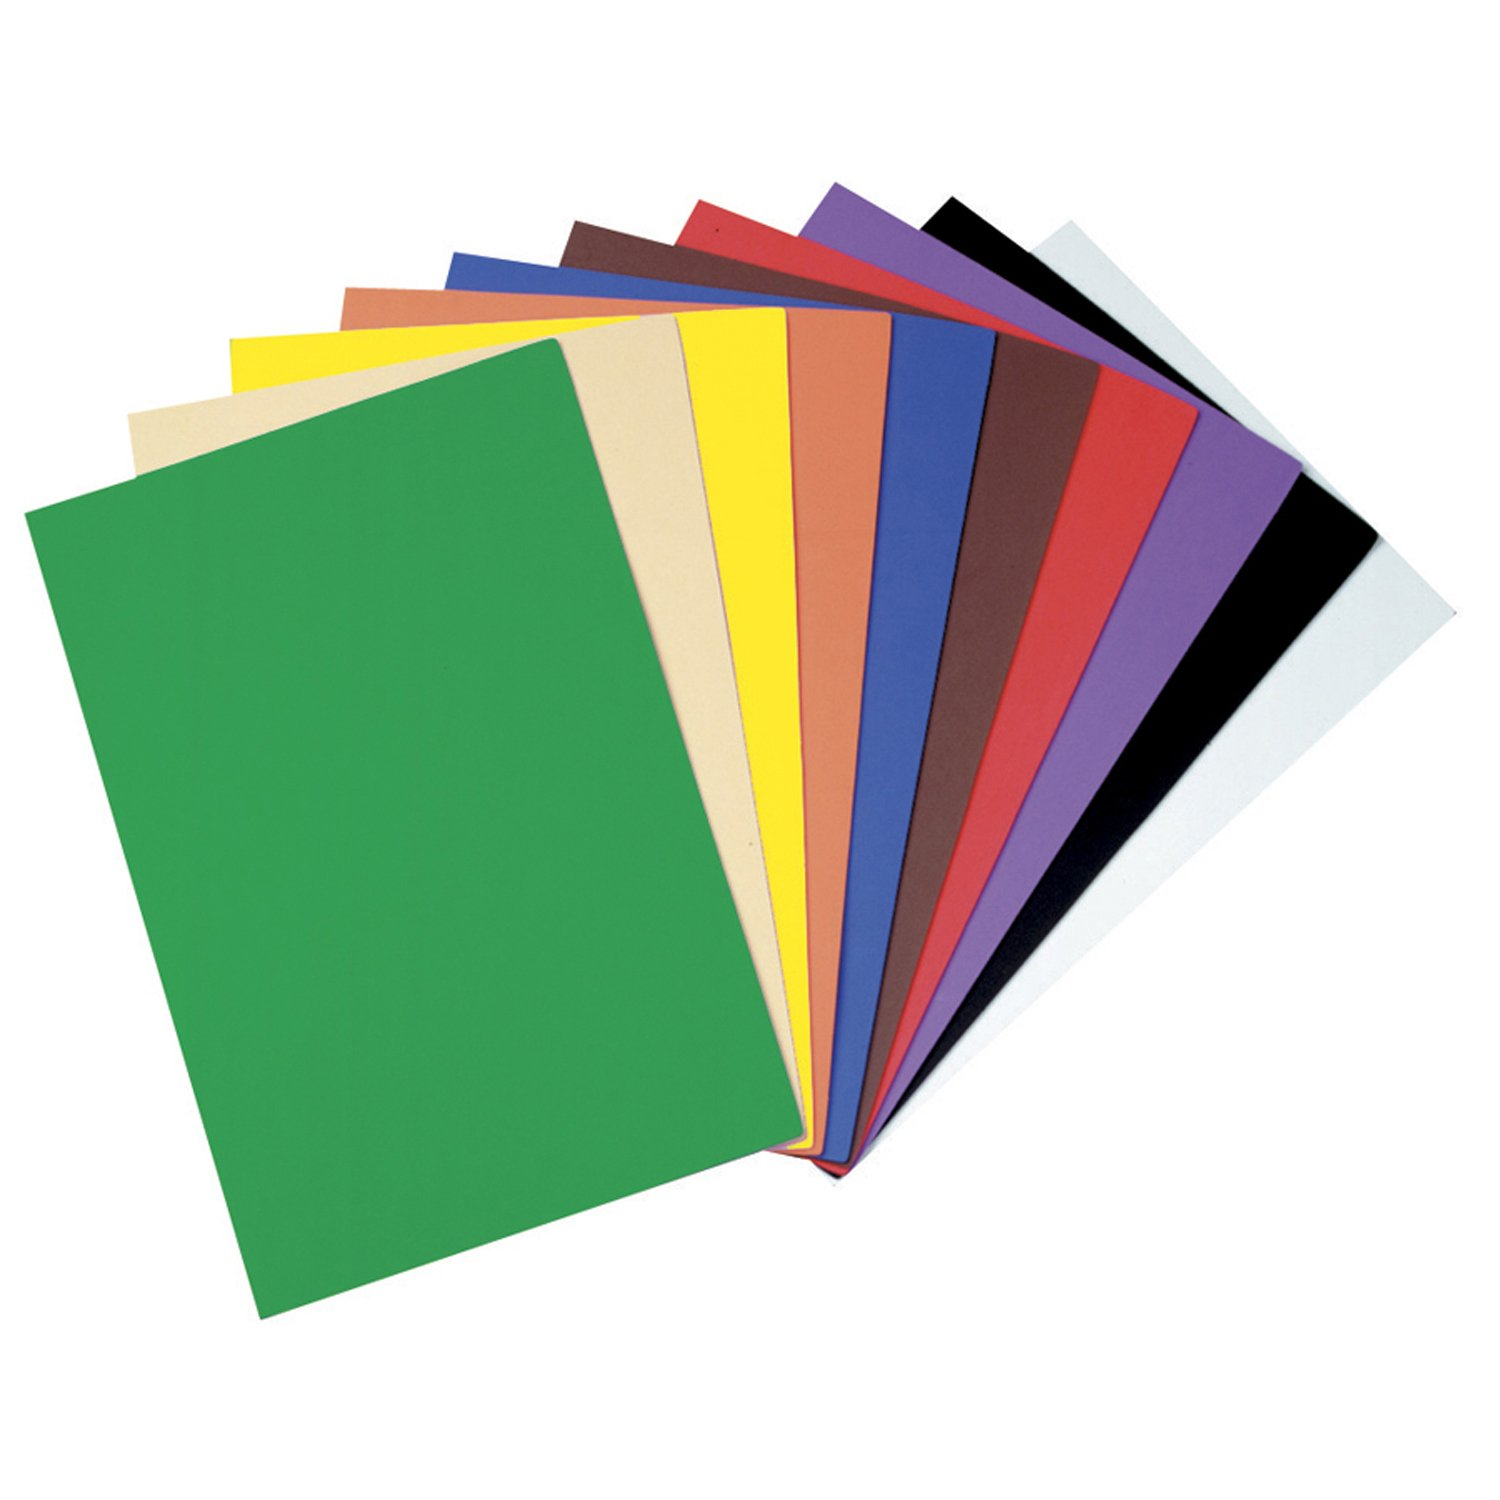 Wonderfoam Sheets, 9x12, Large, 10/PK, Assorted, Sold as 1 Package 9x12 The Chenille Kraft Company CKC4318